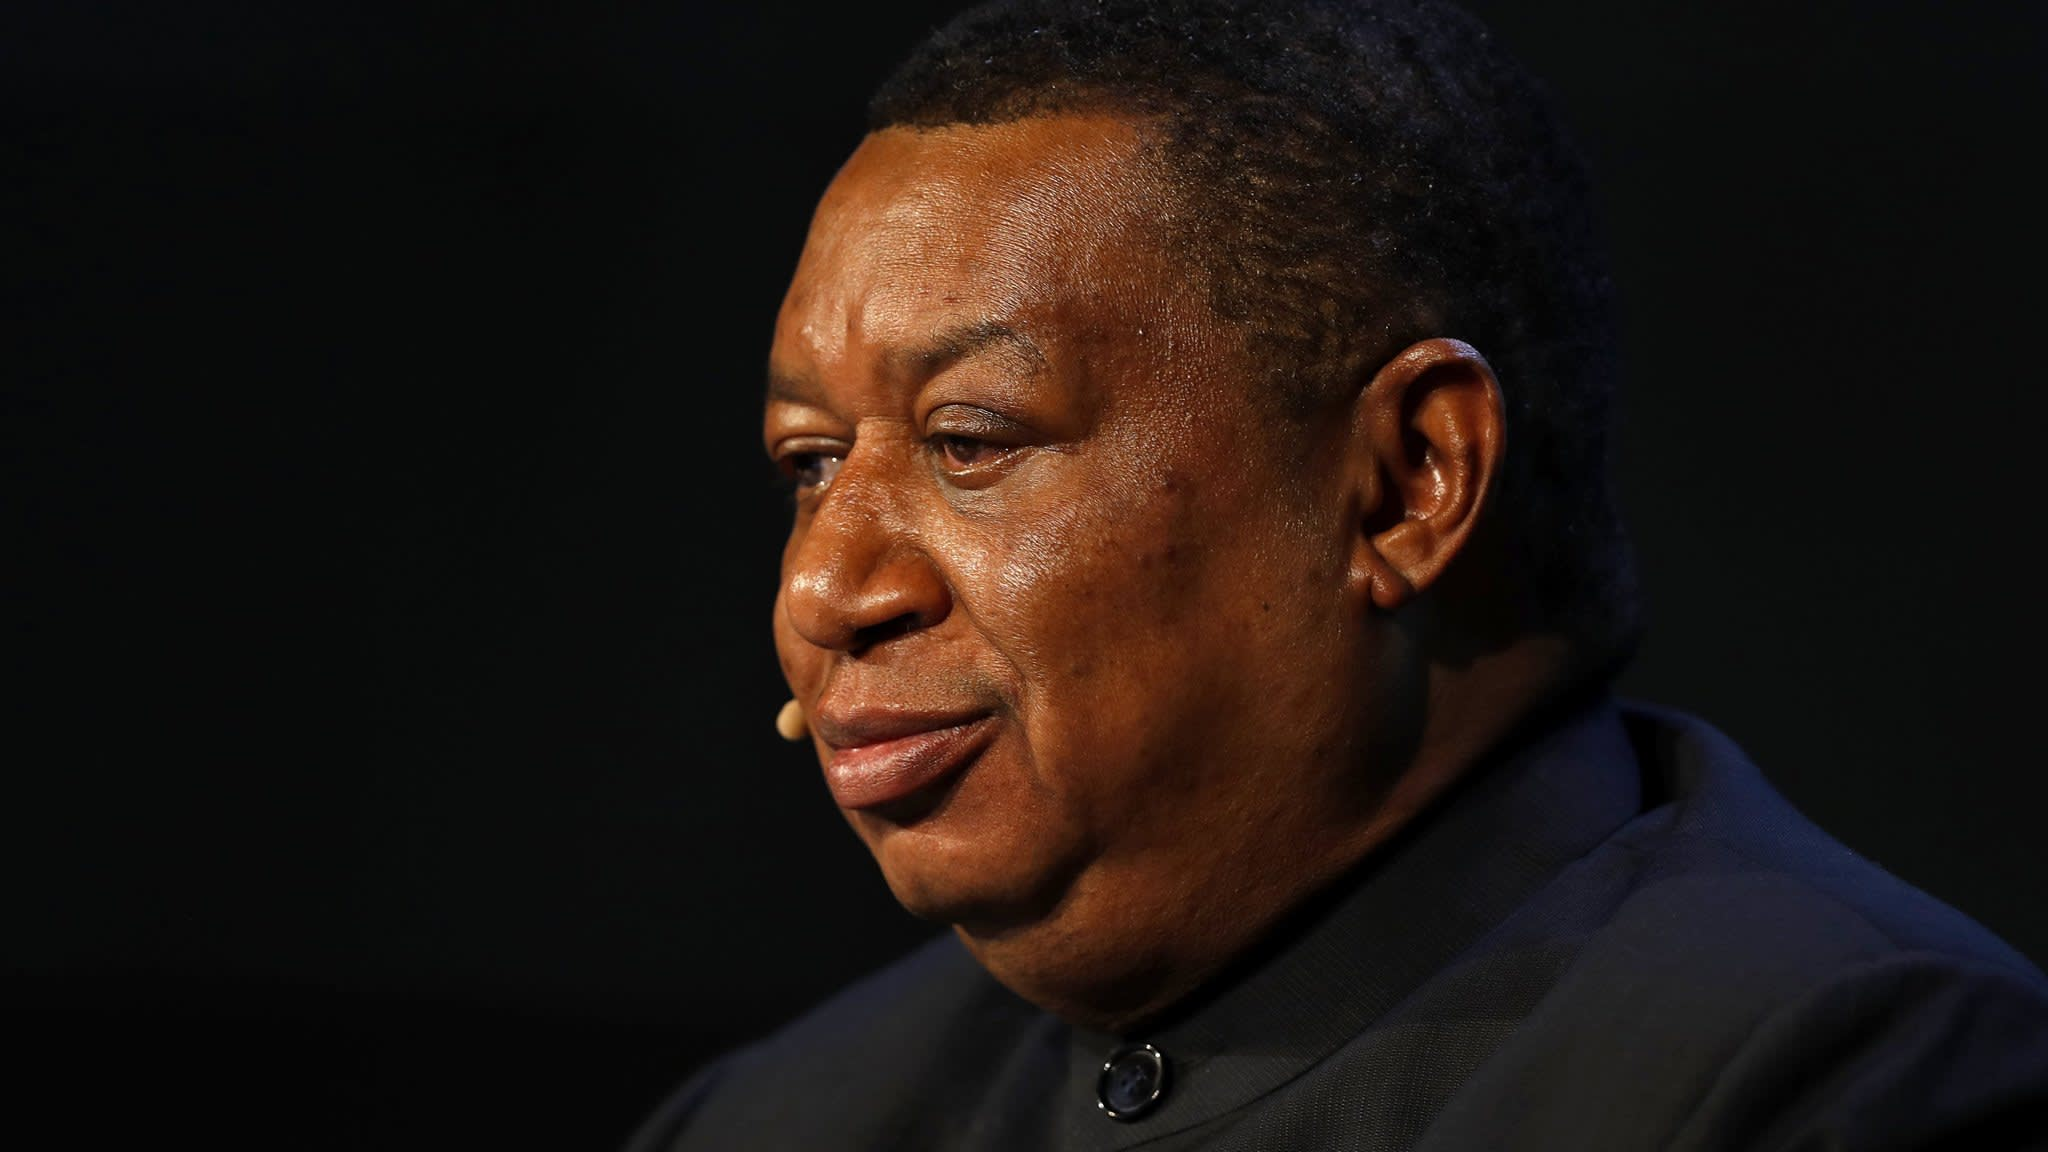 Opec says hedge funds lack 'basic understanding' of oil